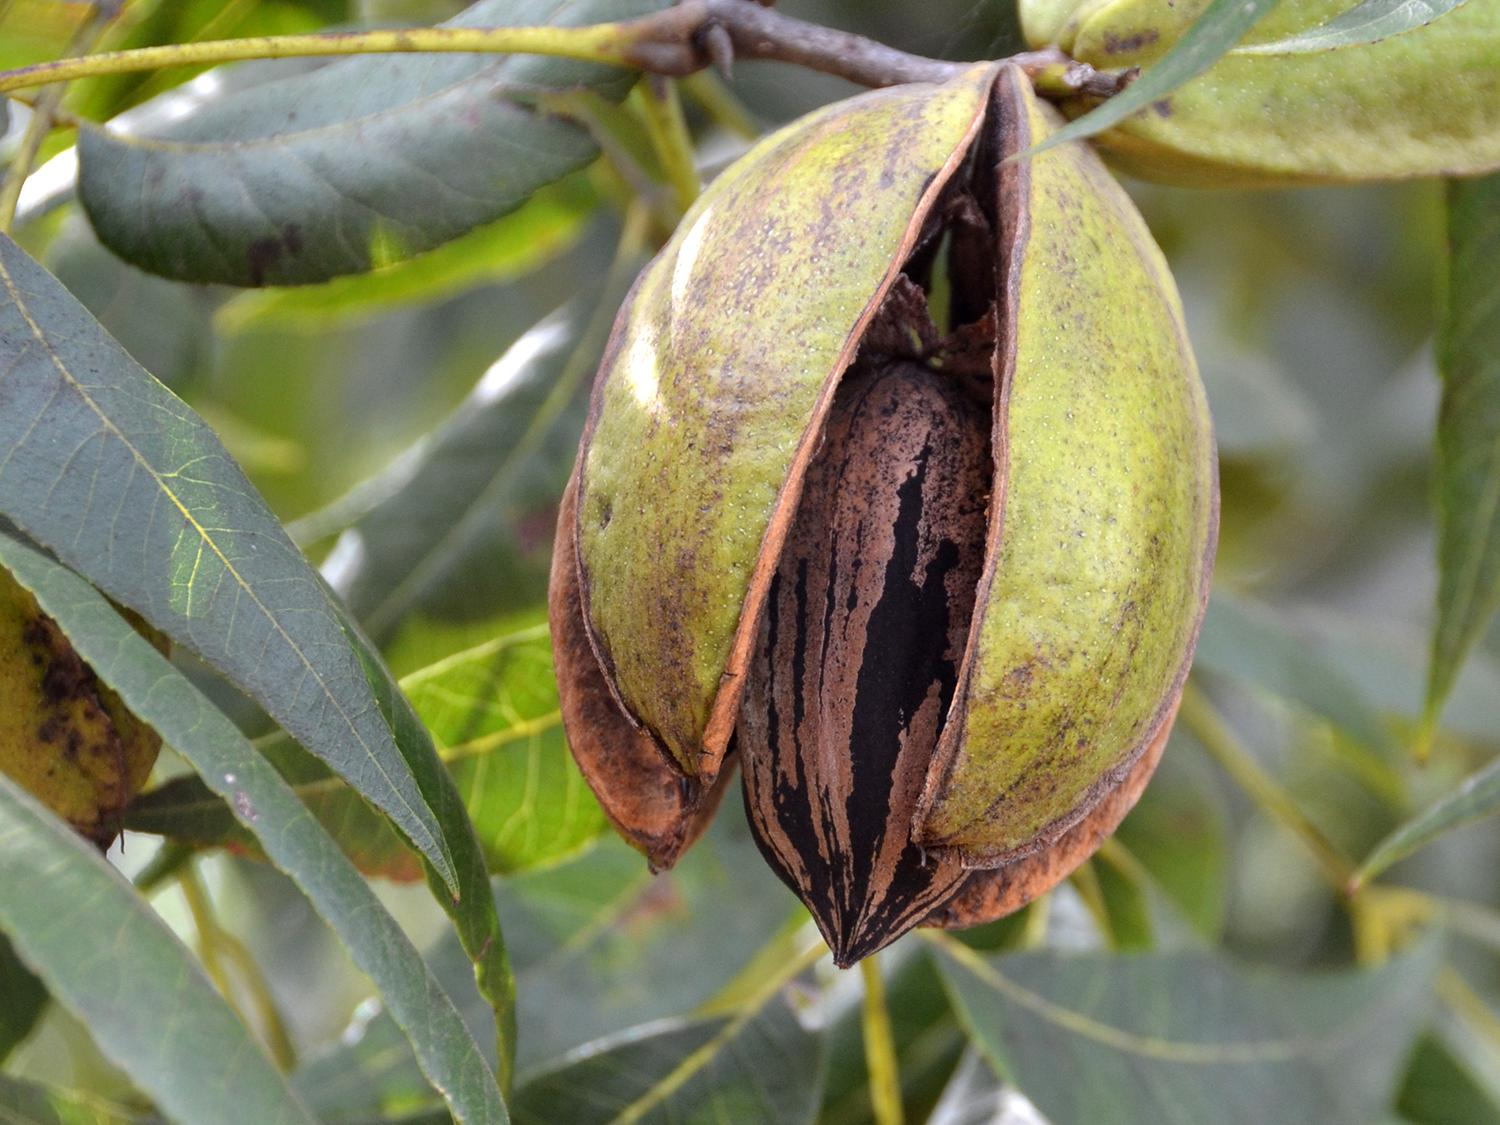 This pecan at Pecan Hills Farms in Raymond, Mississippi, is open but not quite ready for harvest on Oct. 8, 2015. The state's harvest is delayed by a few weeks because of the dry summer. (Photo by MSU Extension/Susan Collins-Smith)